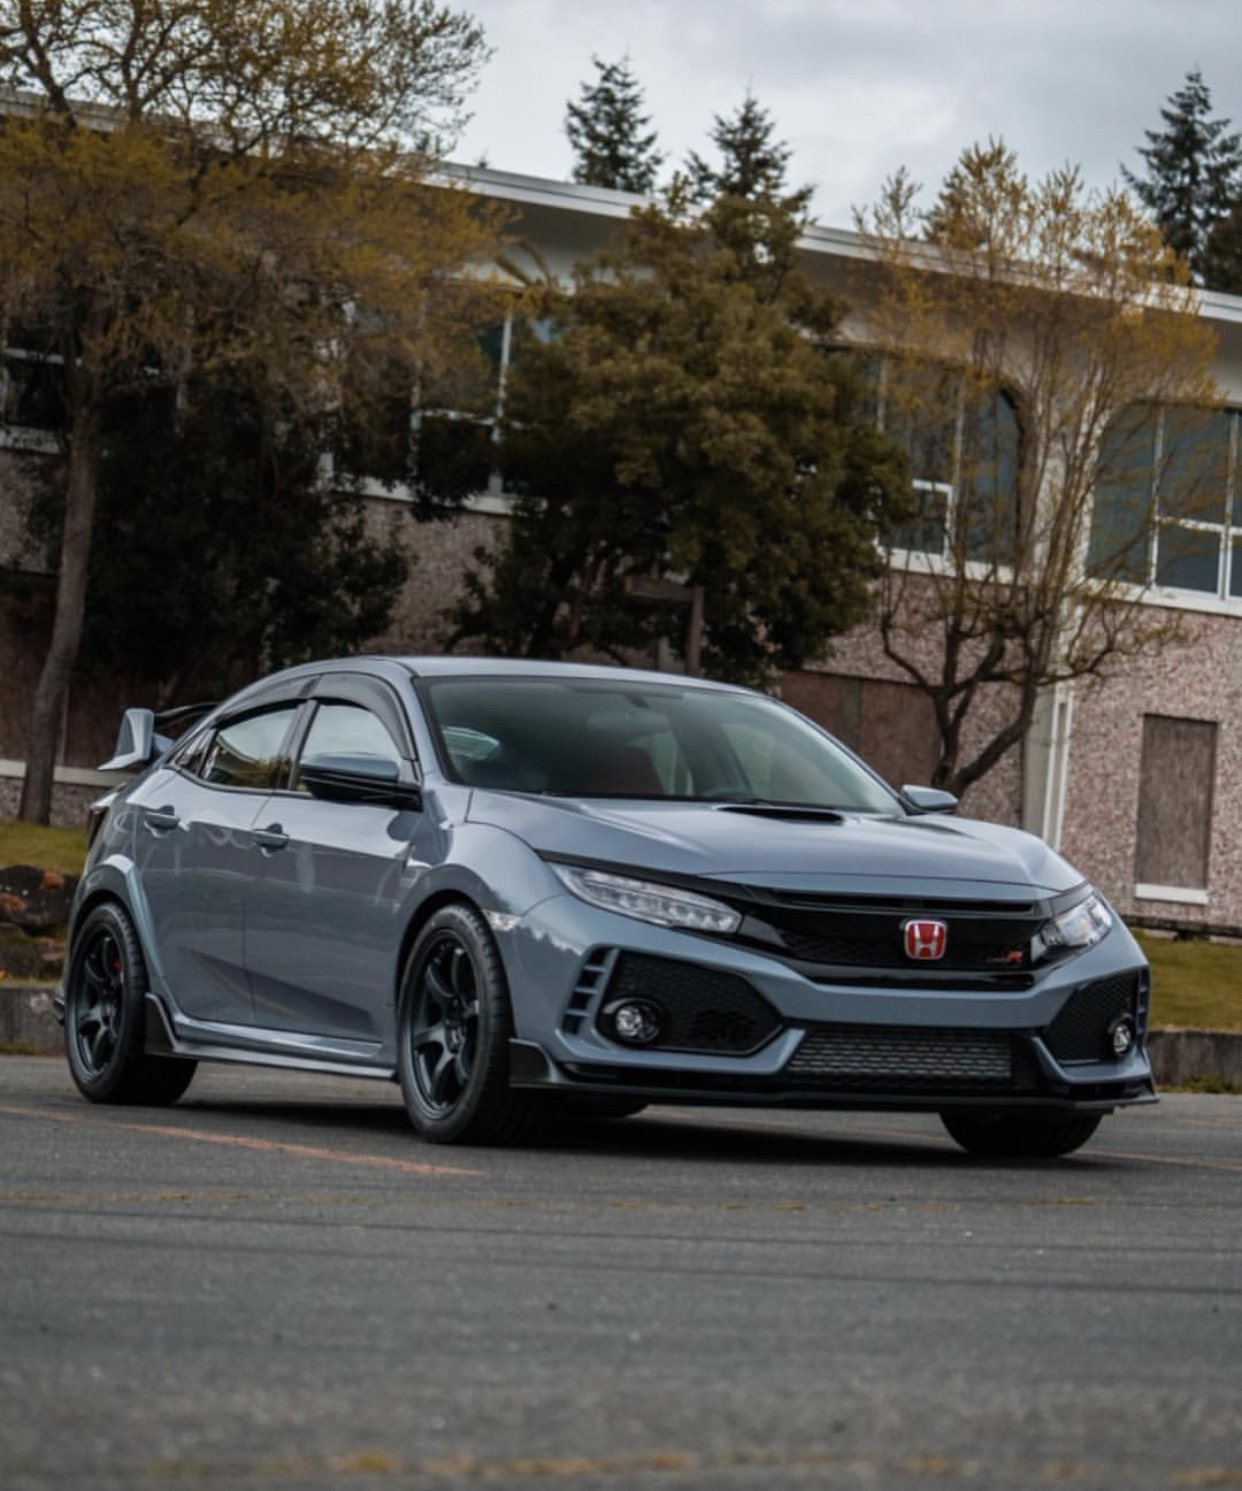 Rays Gramlights 57DR in Gun Blue II shown on our customer's FK8 Civic Type R (Sonic Grey) - 18x9.5 +38 5x120